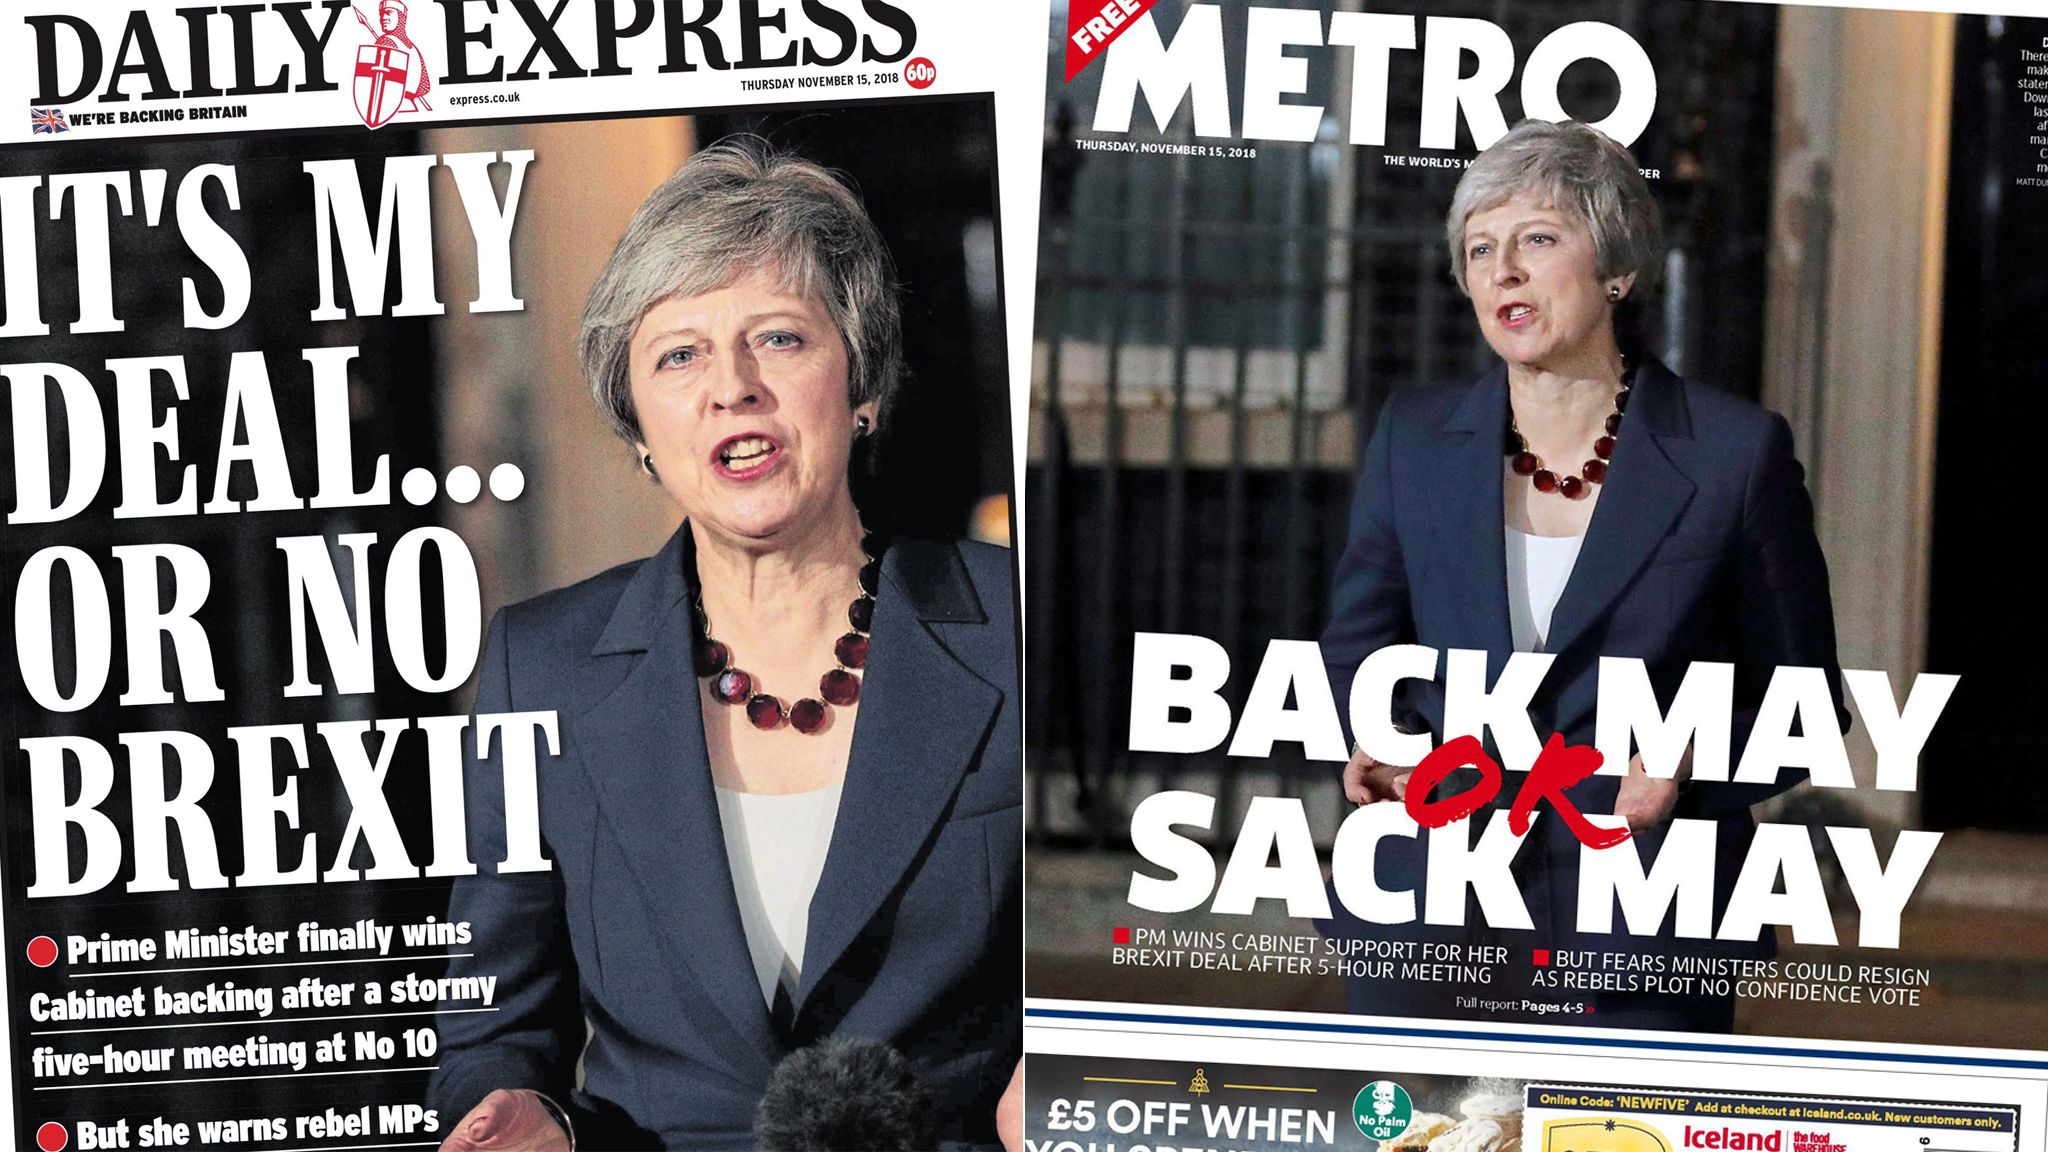 Composite image showing Daily Express and Metro front pages